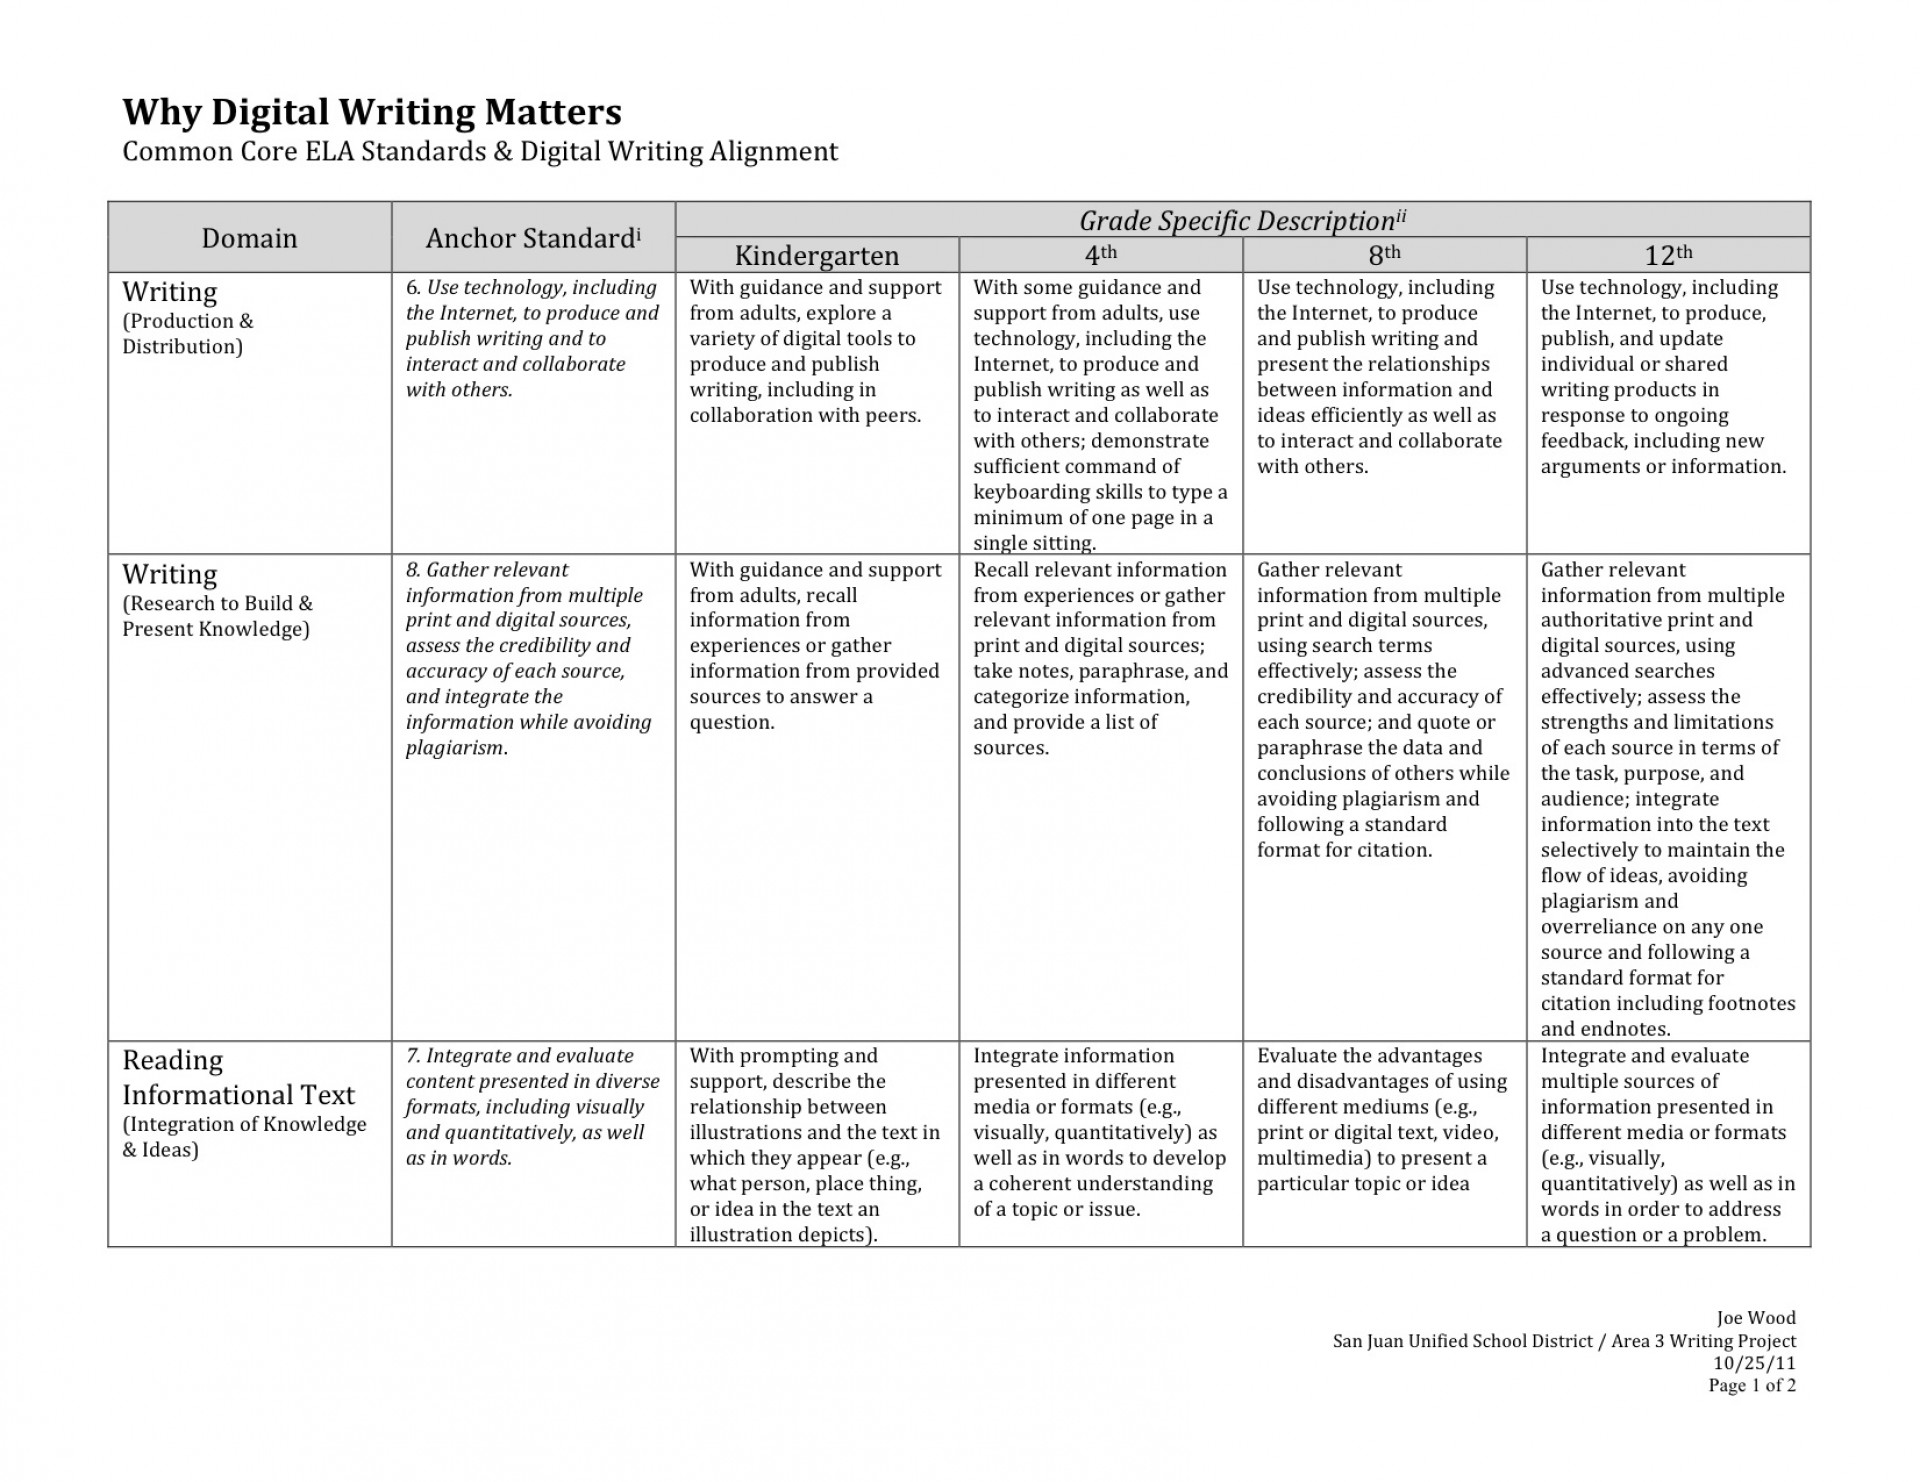 003 Middle School Research Paper Rubric Why Digital Writing Matters According To The Common Core Ela Dreaded Pdf Science Fair 1920